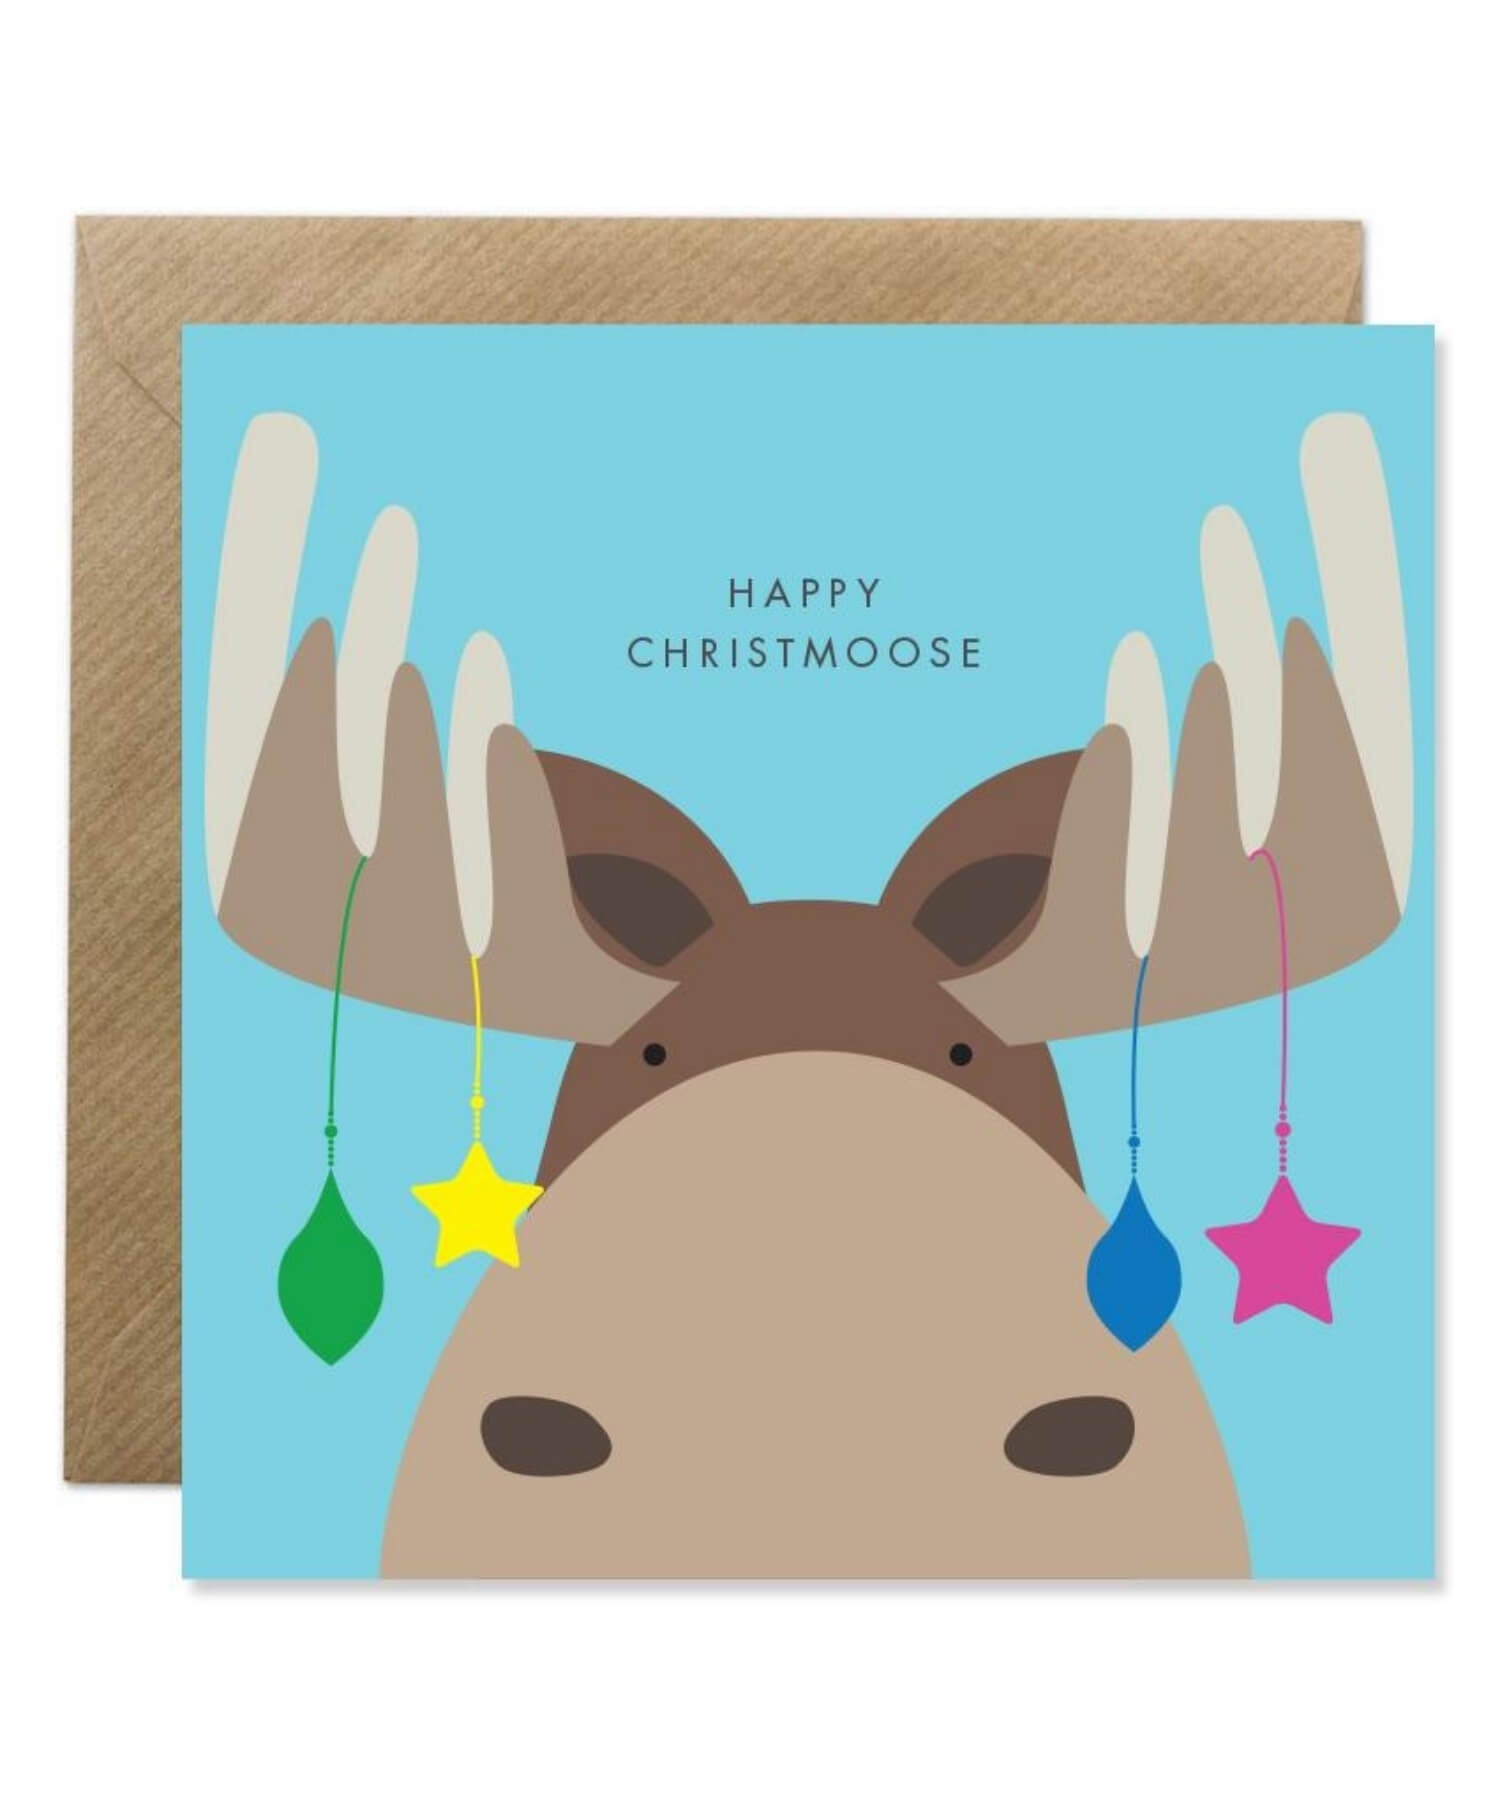 Greeting Card - Happy Christmoose - [Bold Bunny] - Greeting Cards - Irish Gifts